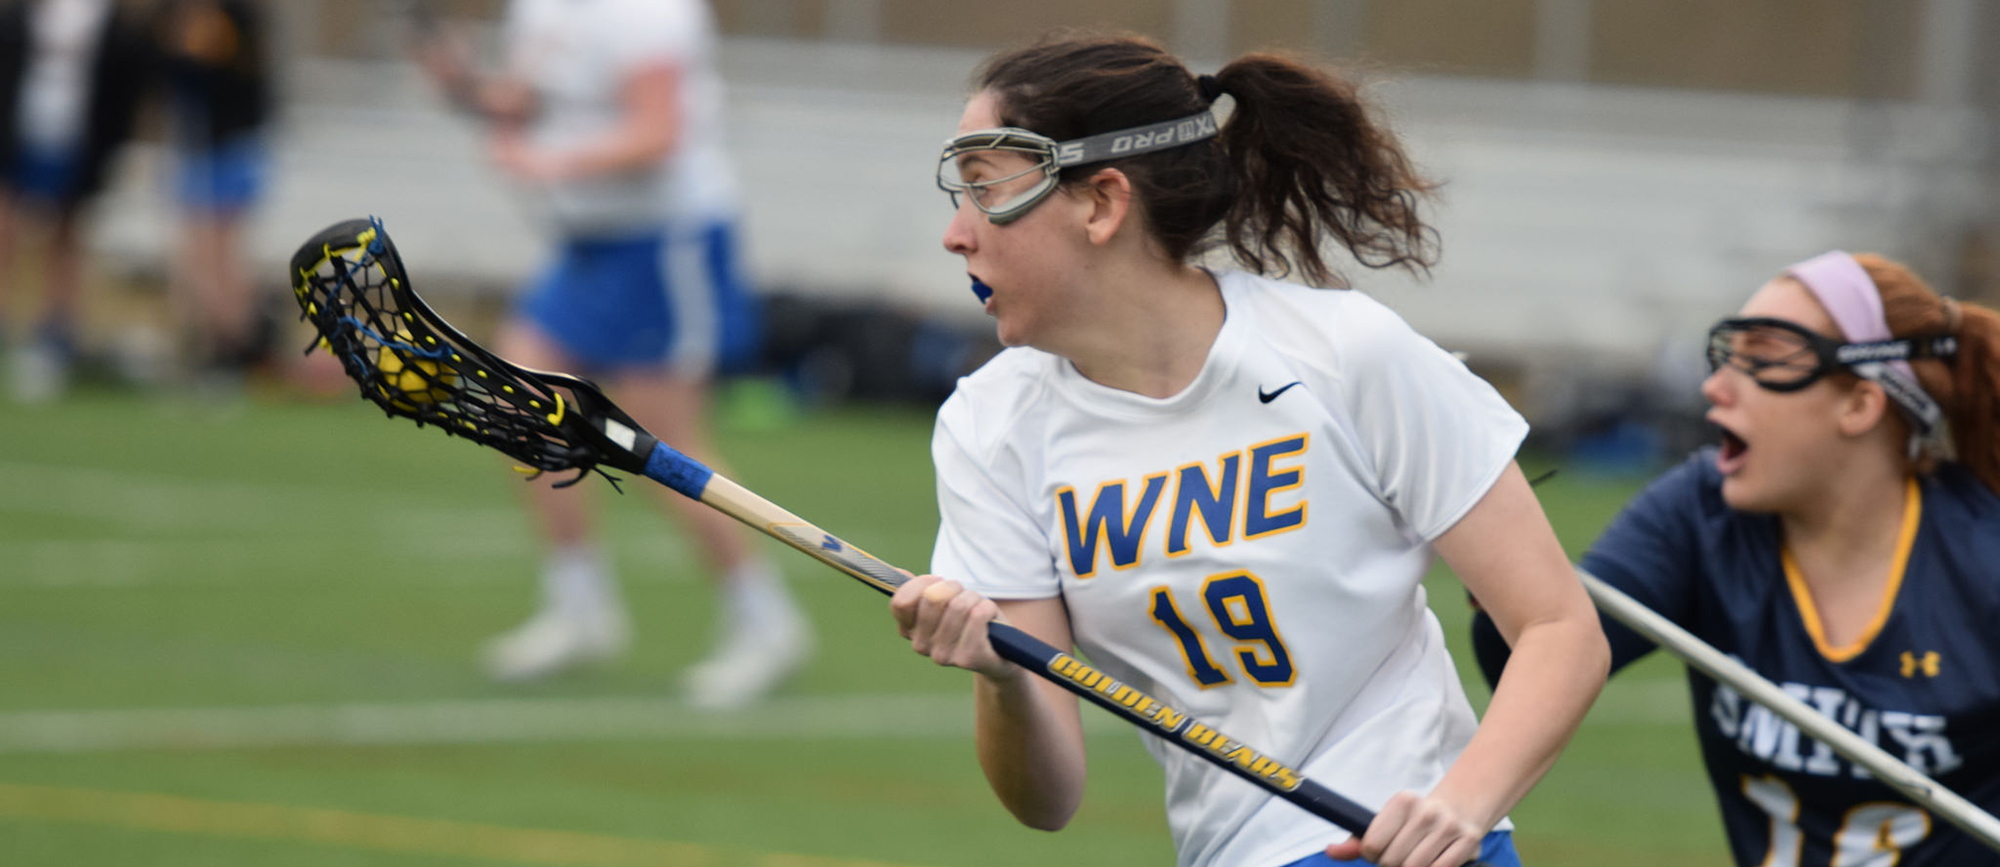 Kristen Breen scored three goals in Western New England's 13-12 loss to Smith on Thursday. (Photo by Rachael Margossian)